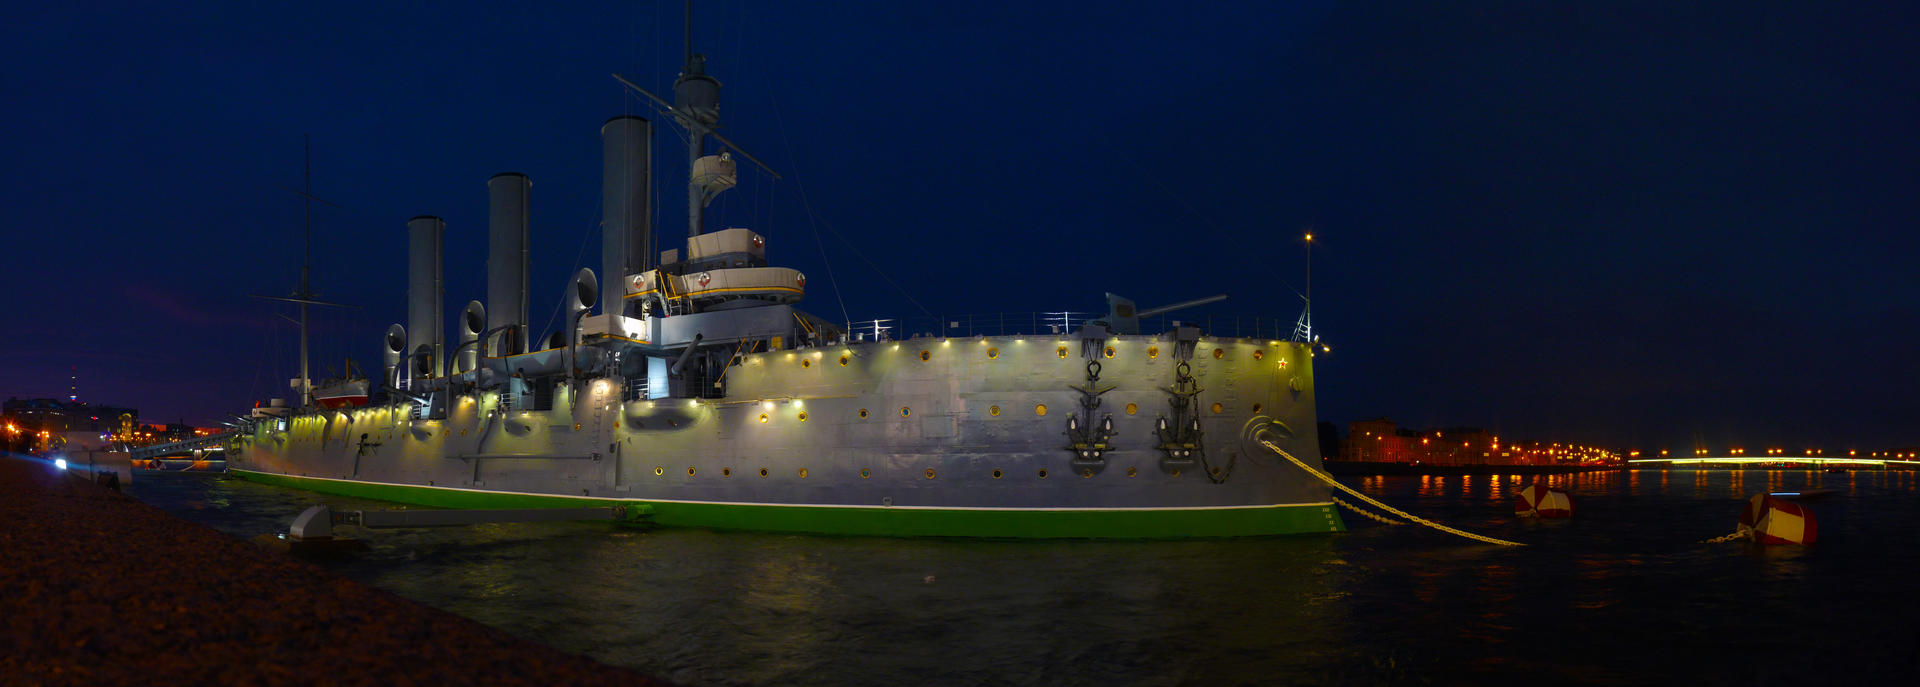 Saint-Petersburg. The Cruiser Aurora at night by EldarZakirov